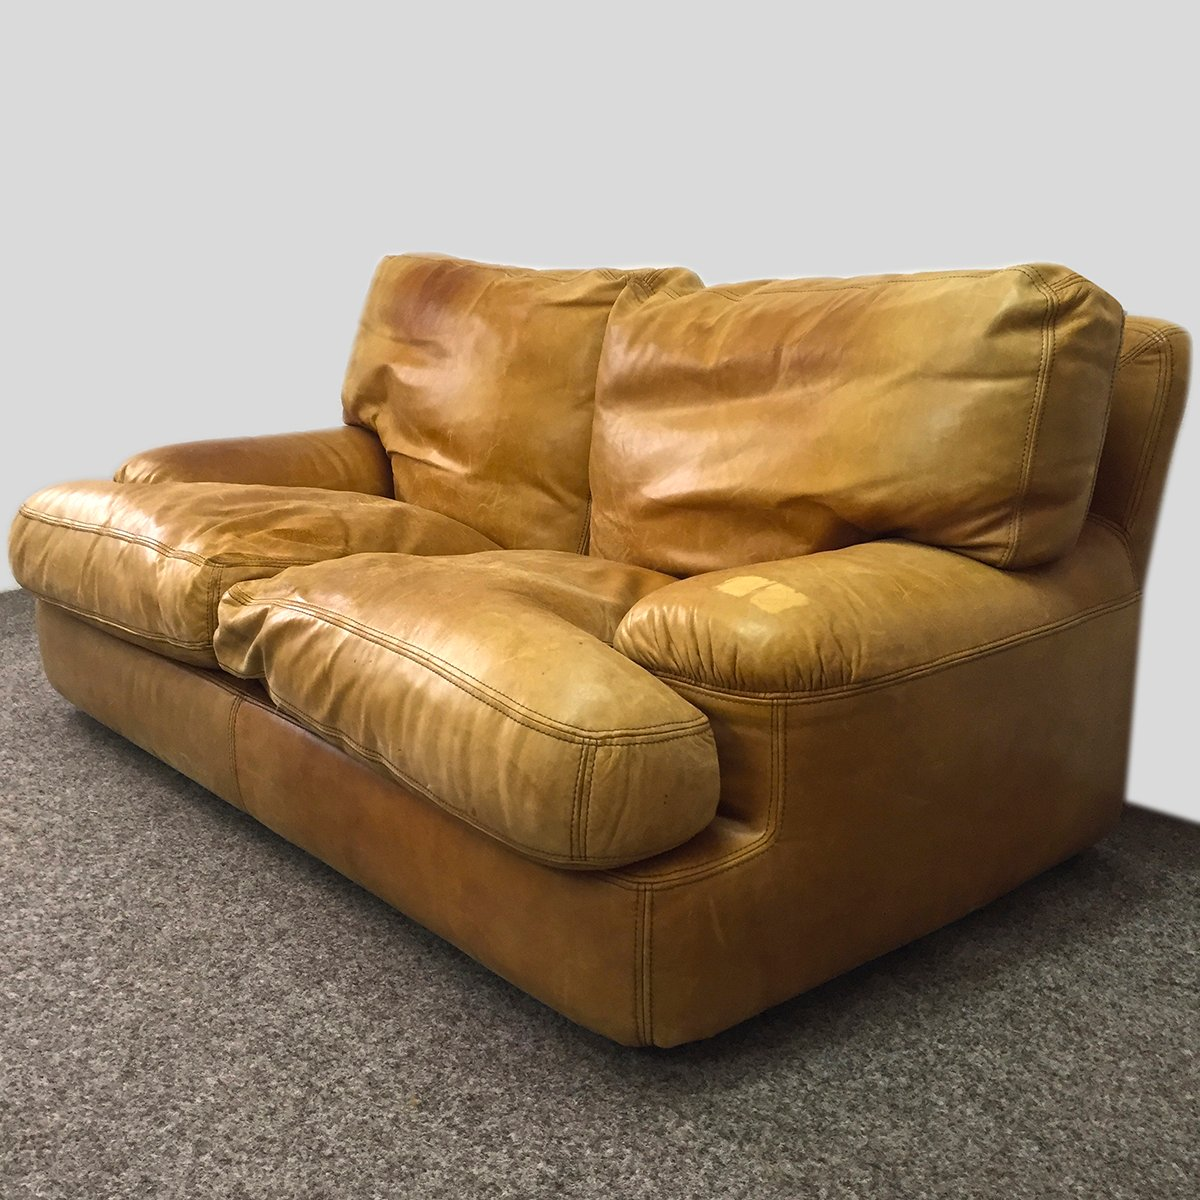 Leather Sofa Wholesalers Uk: Leather Sofa With Feather Upholstery, 1970s For Sale At Pamono